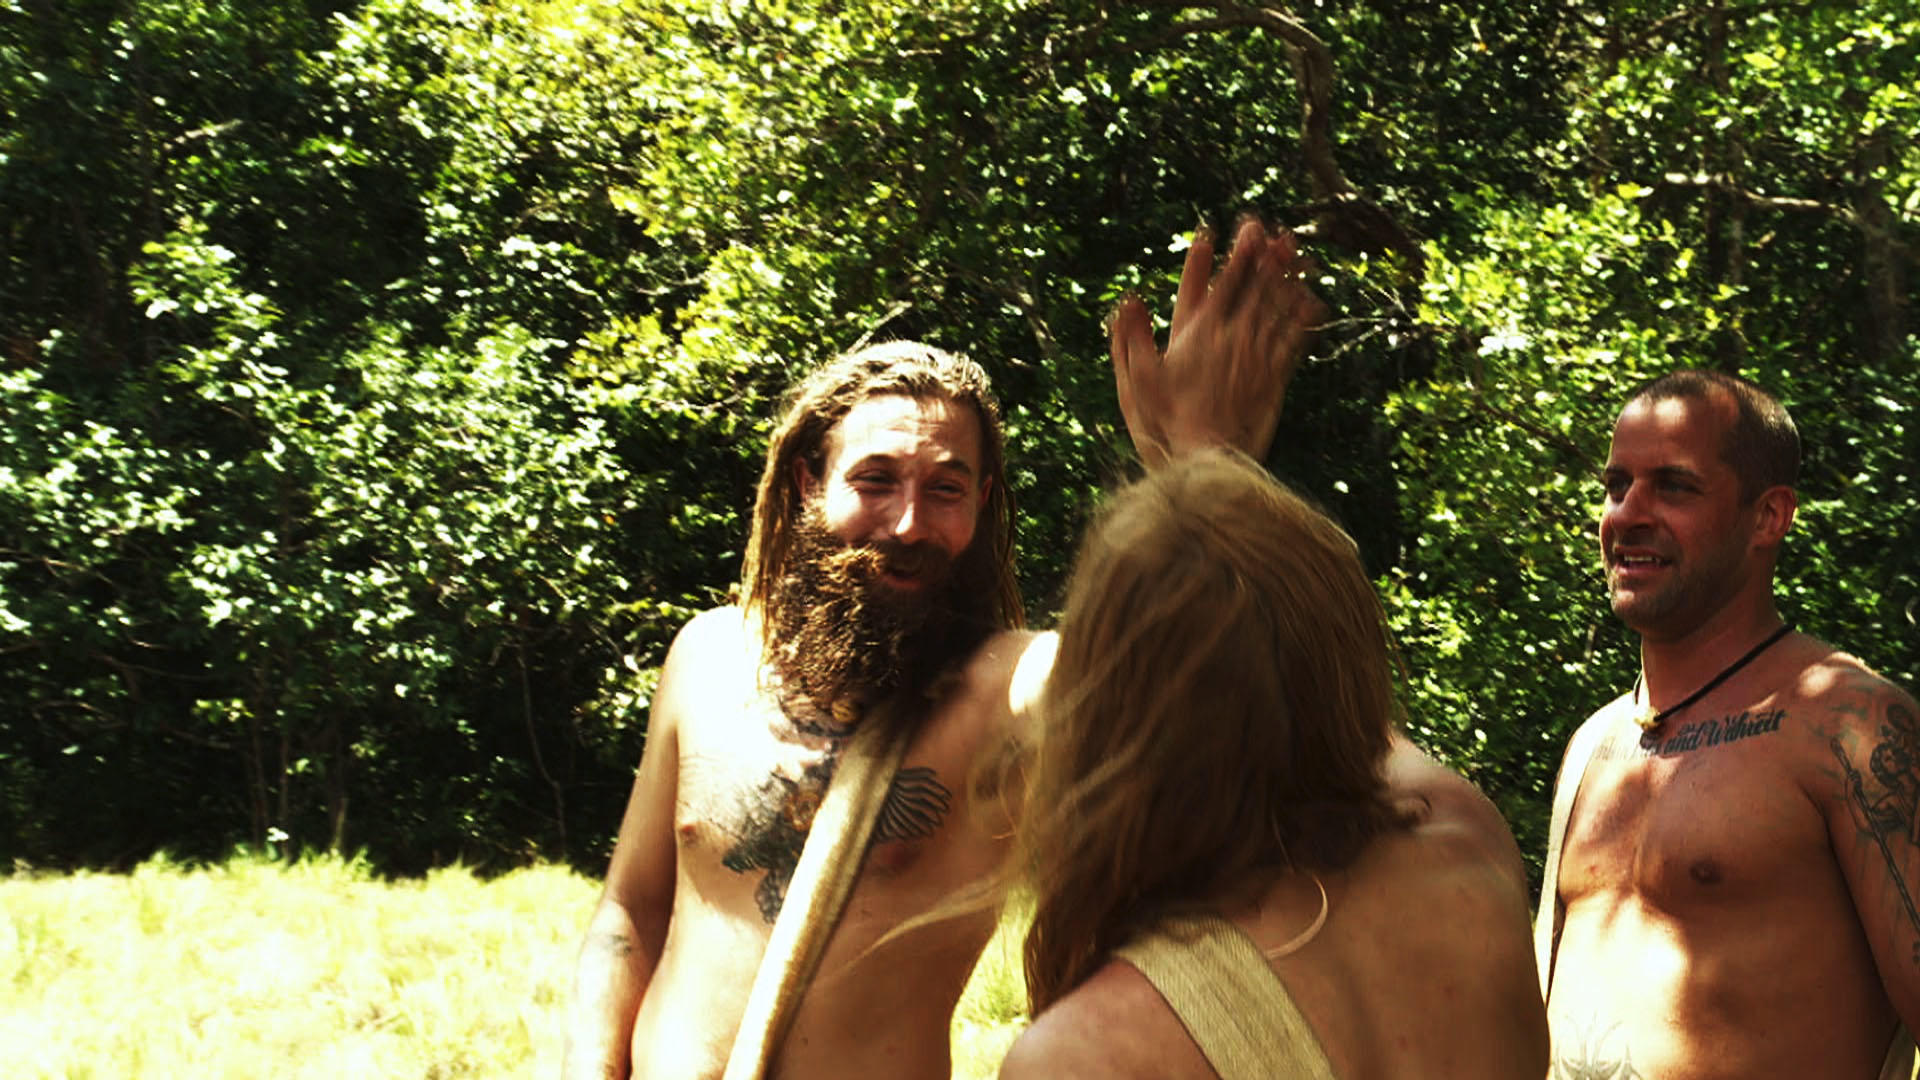 Naked And Afraid XL Has Been Renewed For Season 3 At Discovery